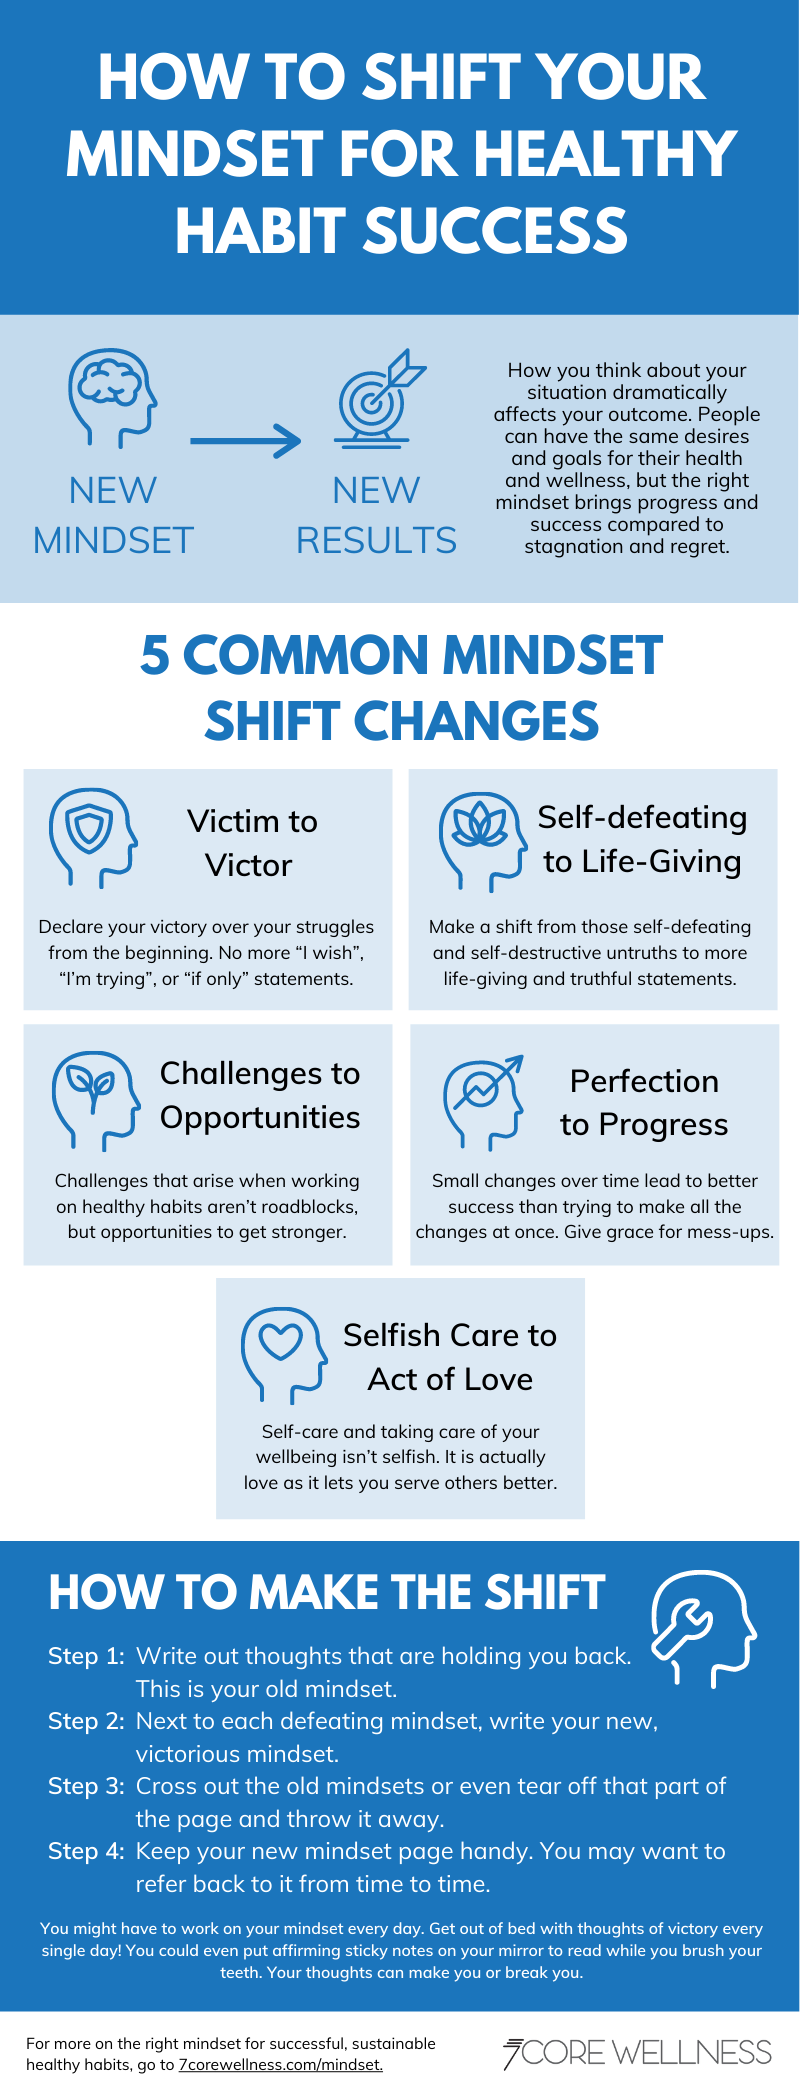 How to Shift Your Mindset for Healthy Habit Success infographic